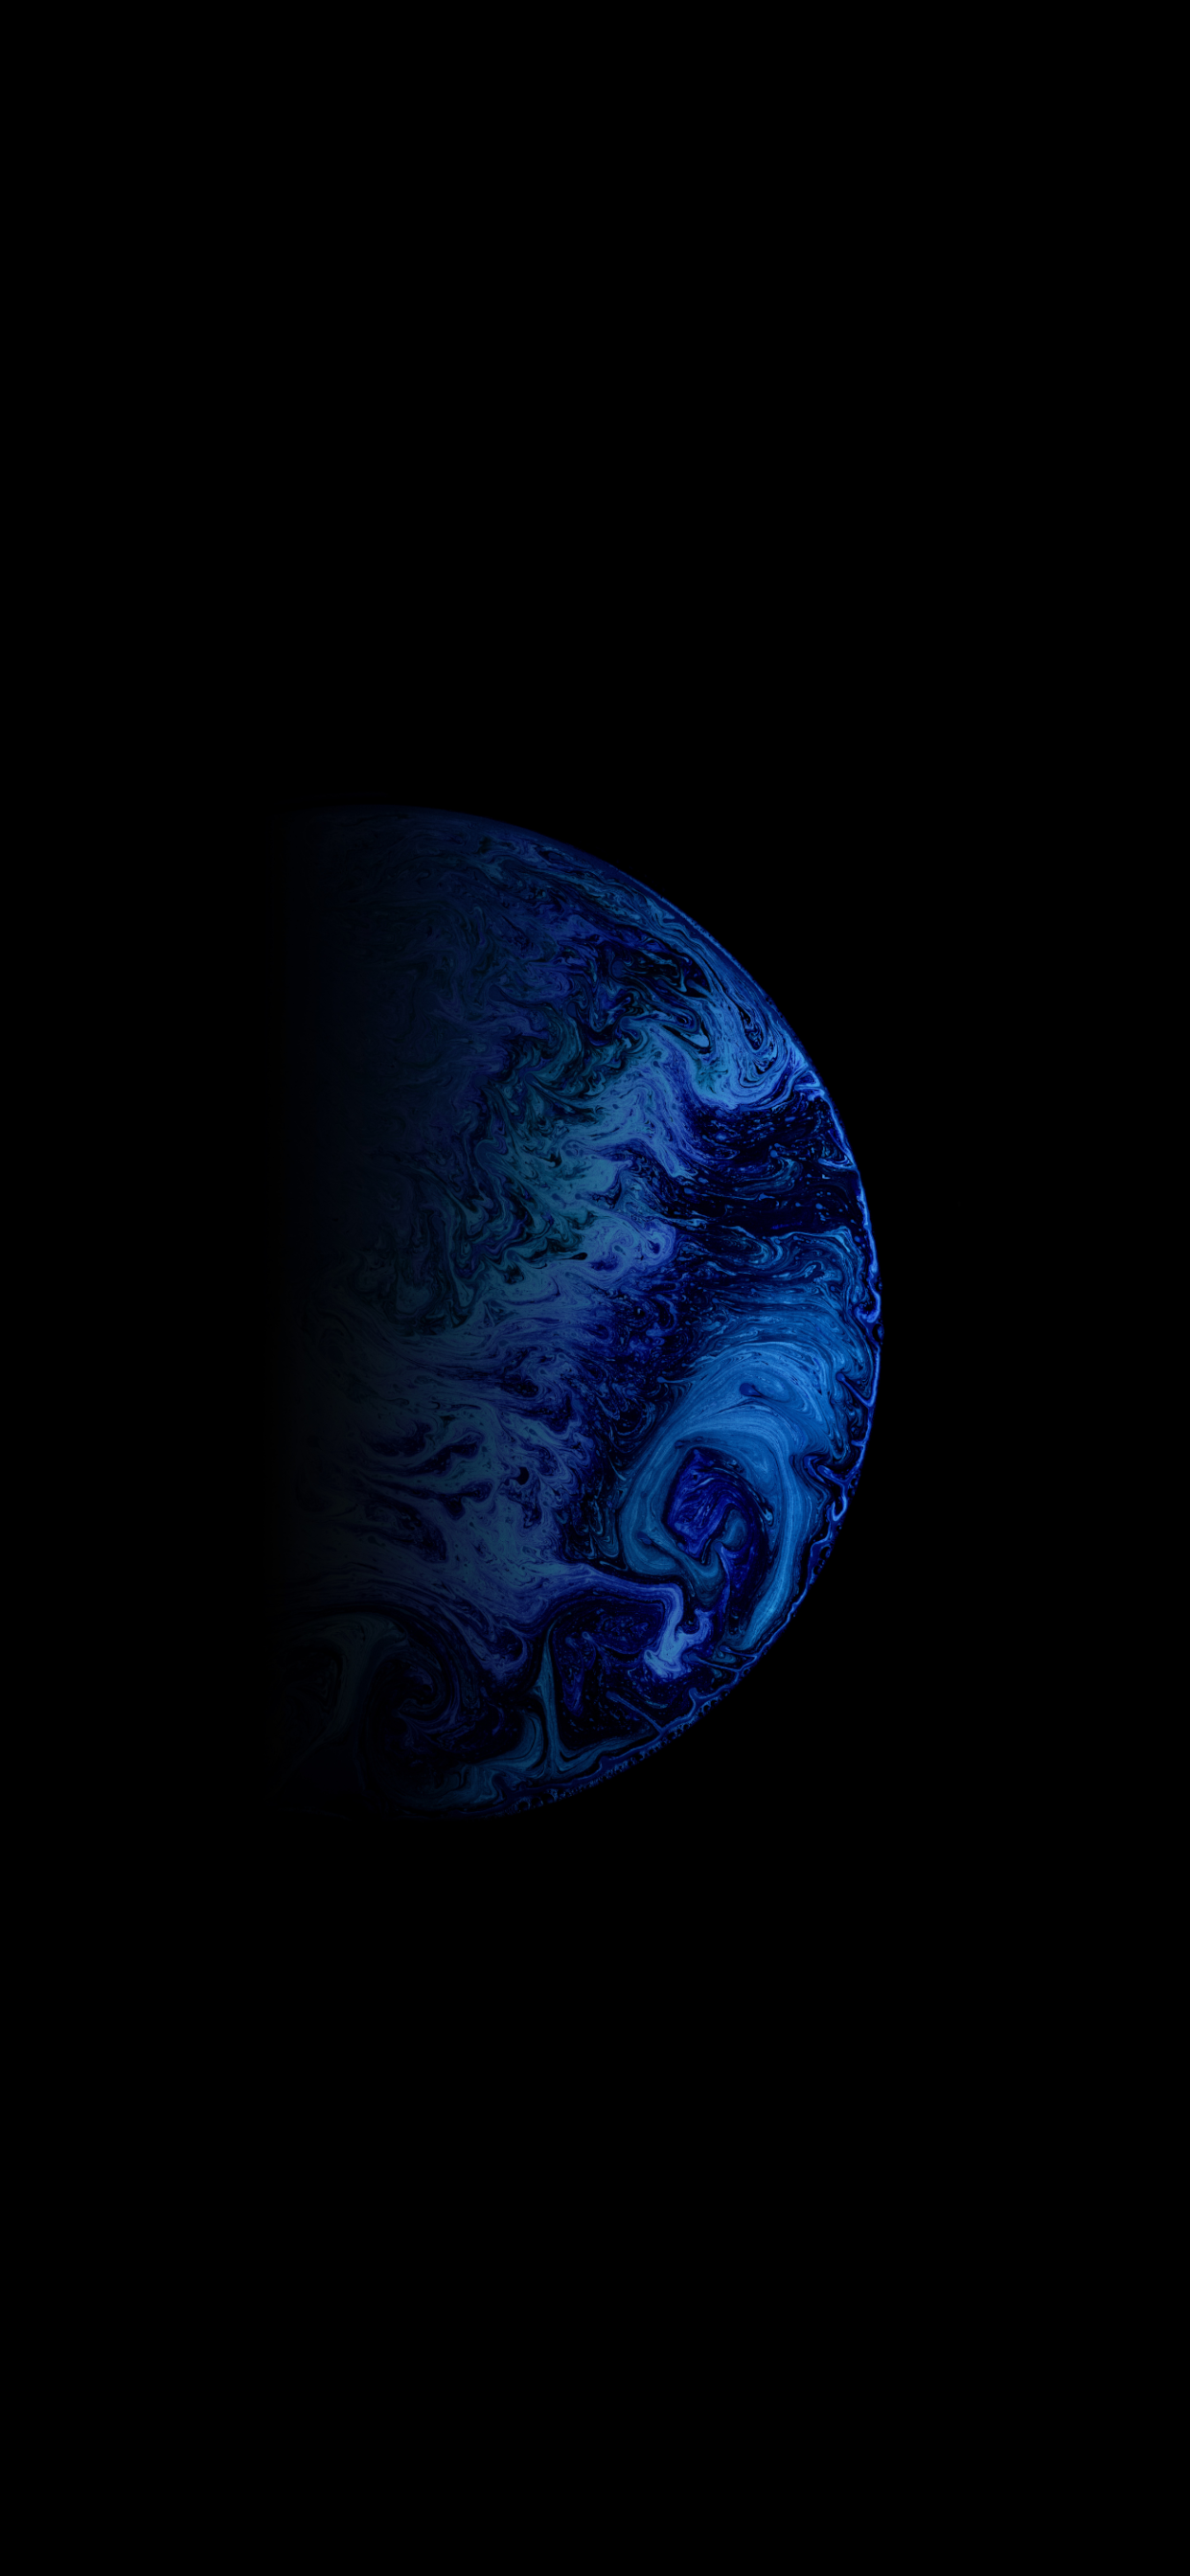 iPhone wallpapers liquid planet blue Fonds d'écran iPhone du 25/05/2020